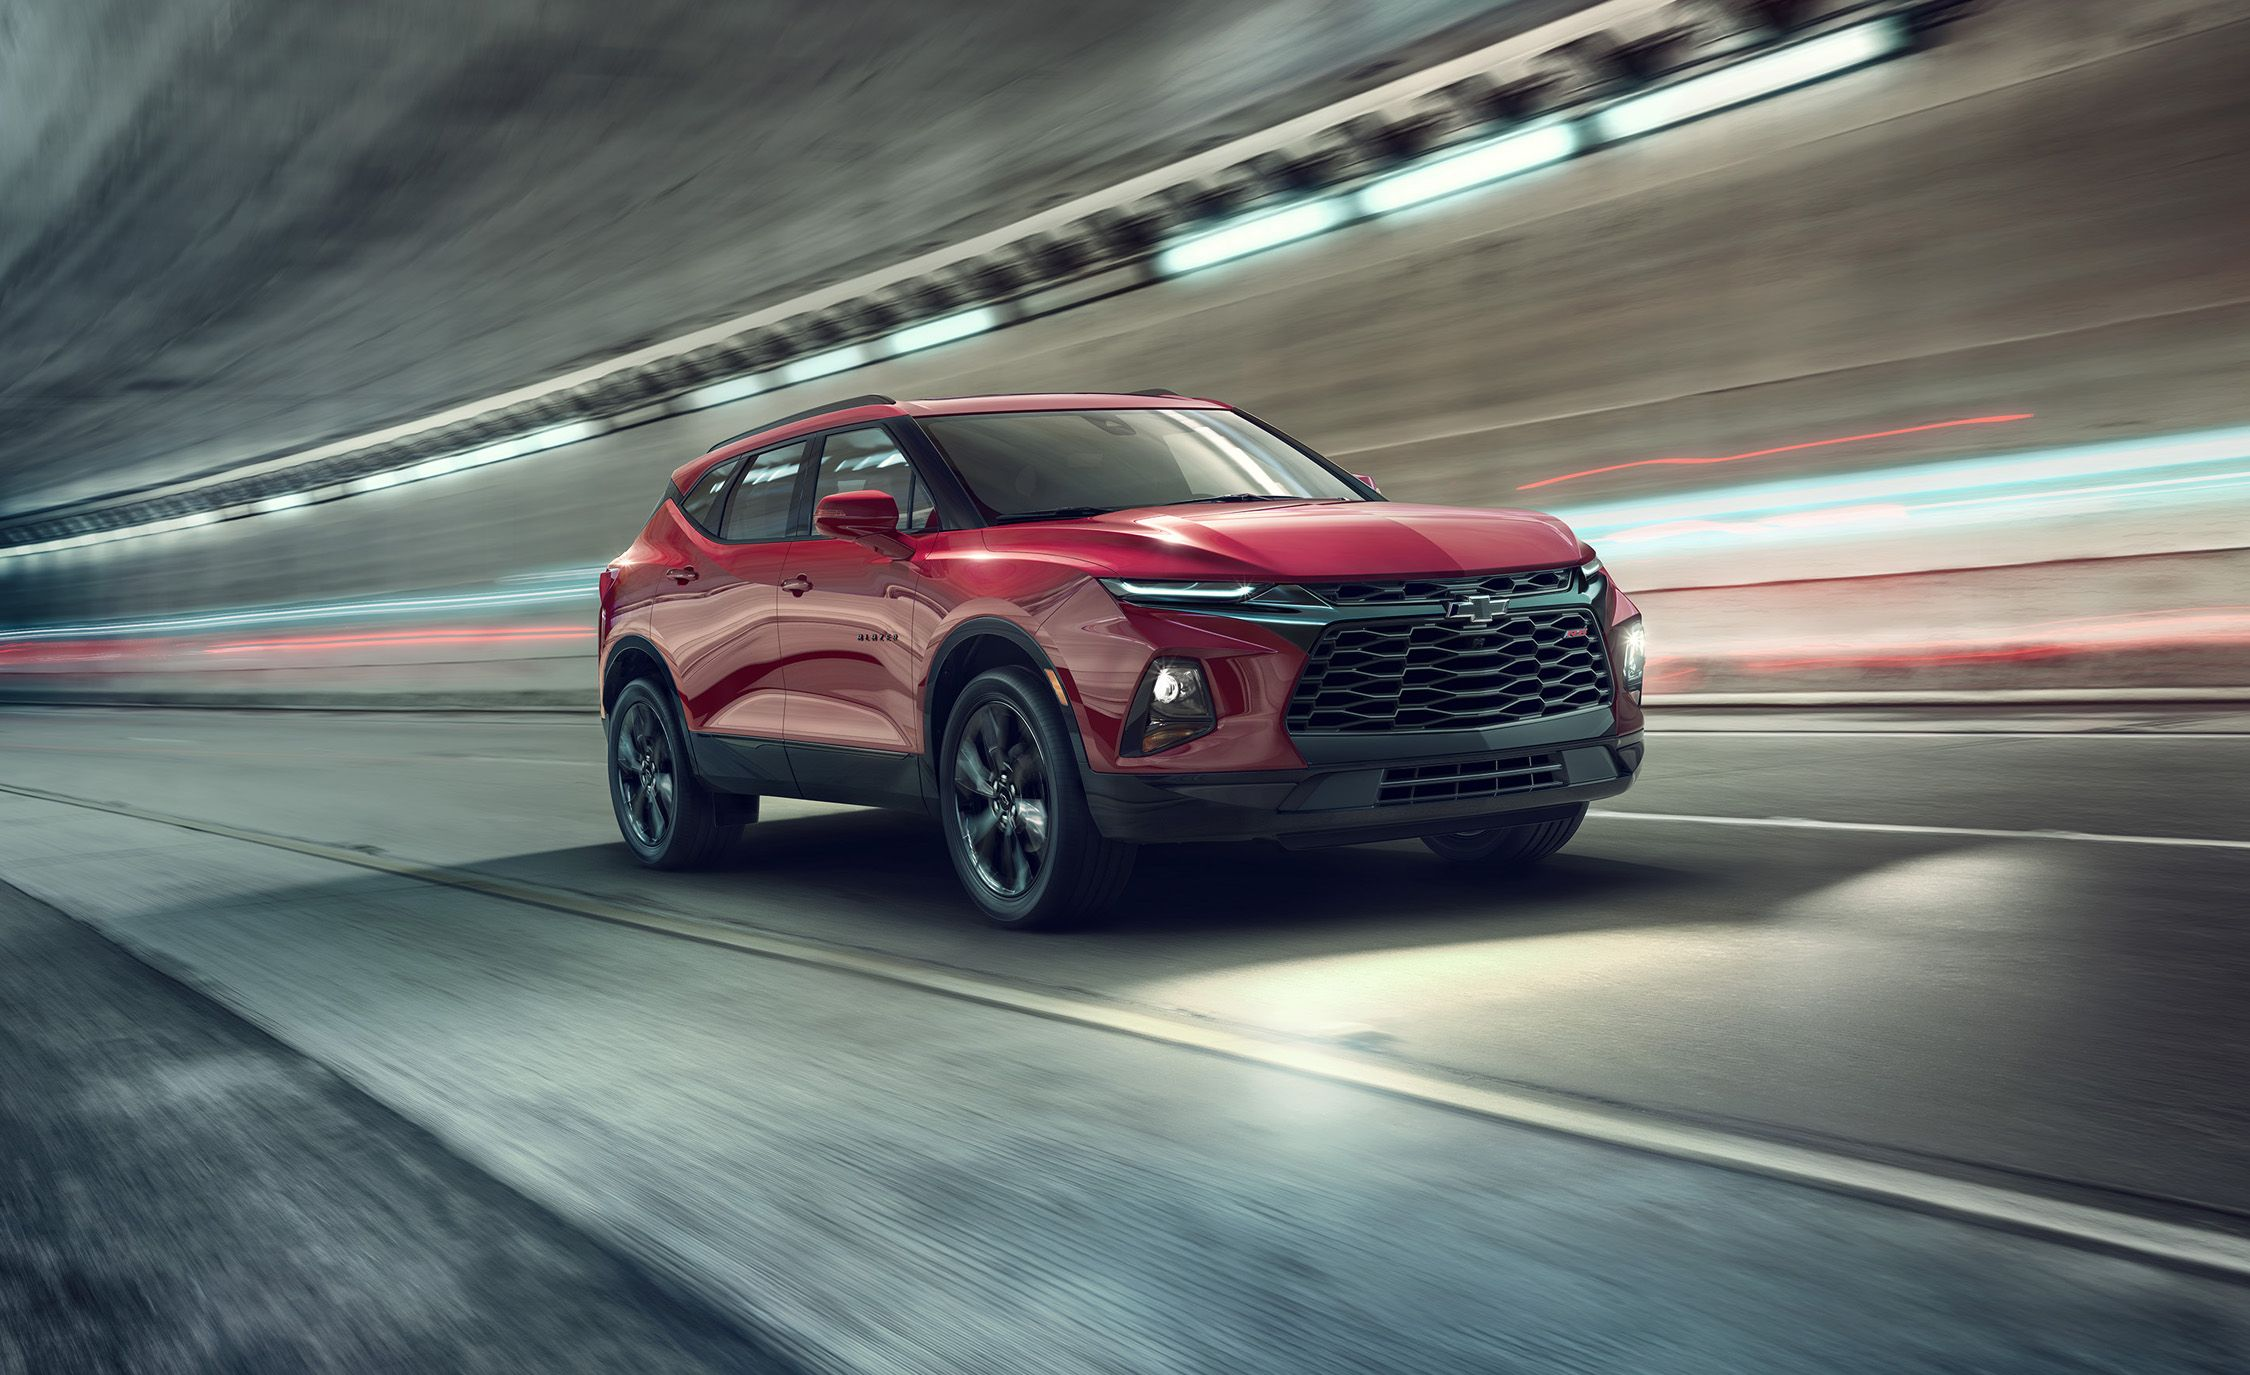 2019 Chevrolet Blazer Revealed Info And Pricing On The